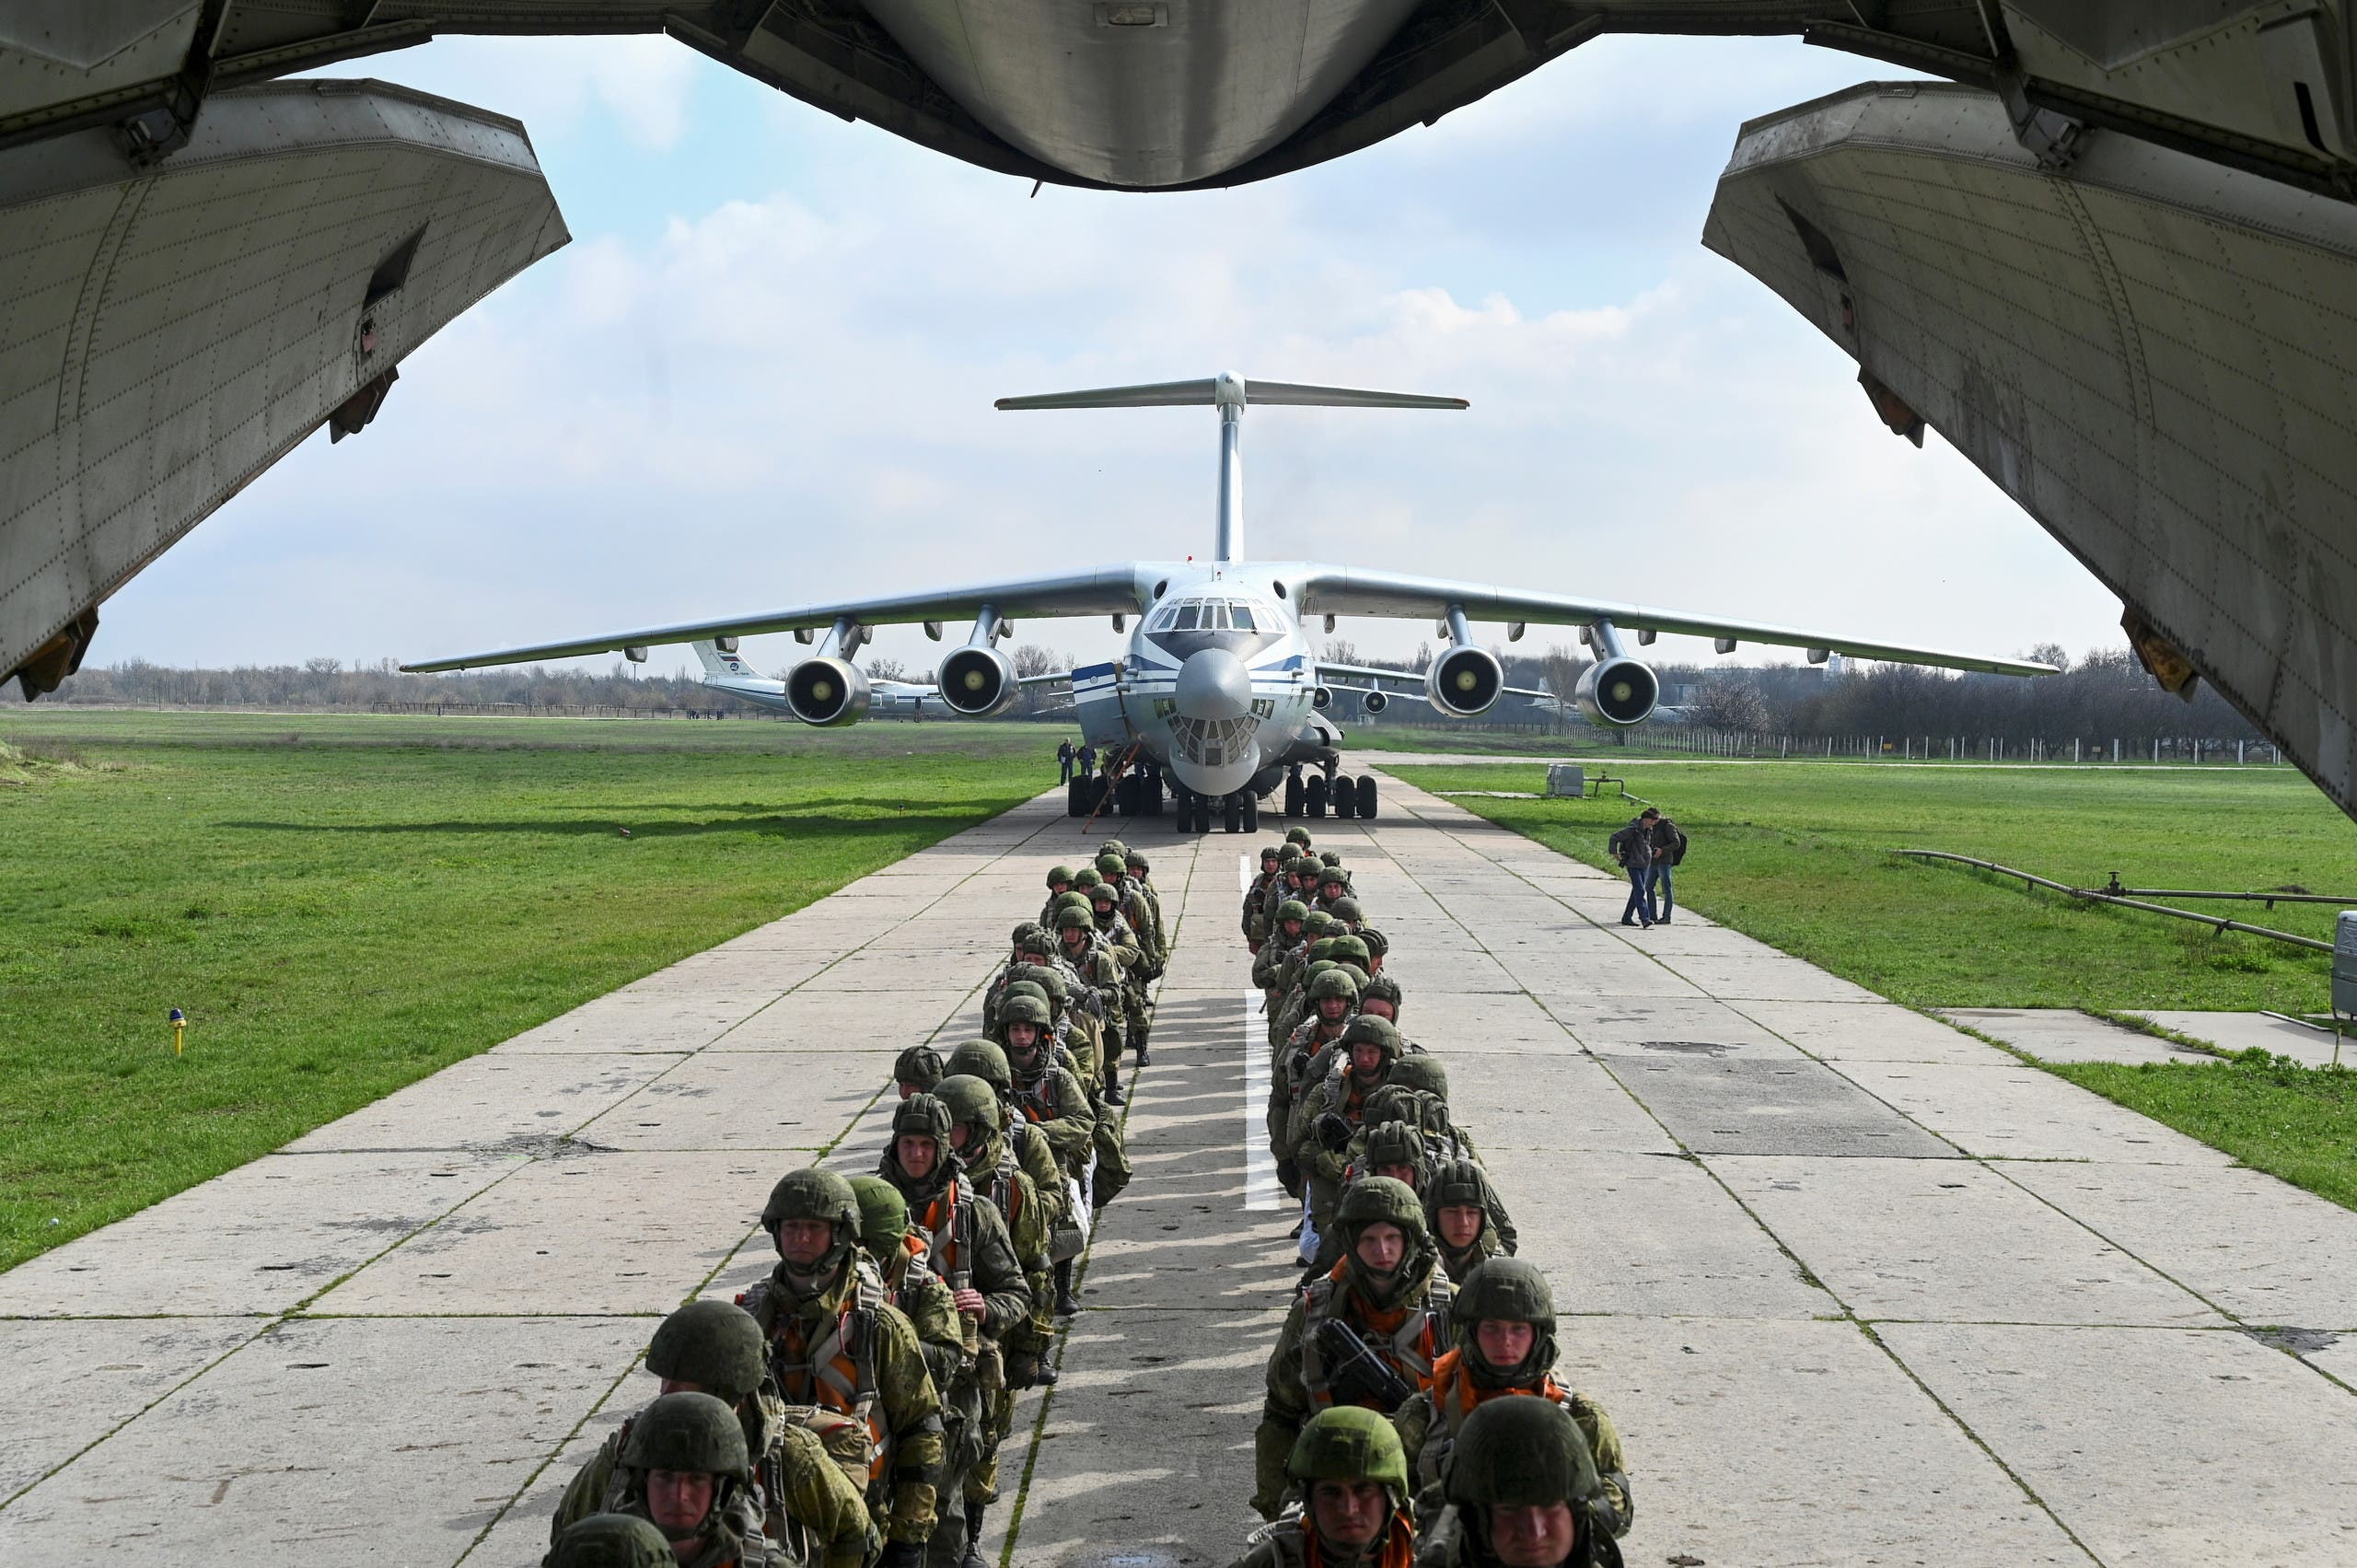 Service members of the Russian airborne forces board an Ilyushin Il-76 transport plane during drills at a military aerodrome in the Azov Sea port of Taganrog, Russia April 22, 2021. (File photo: Reuters)